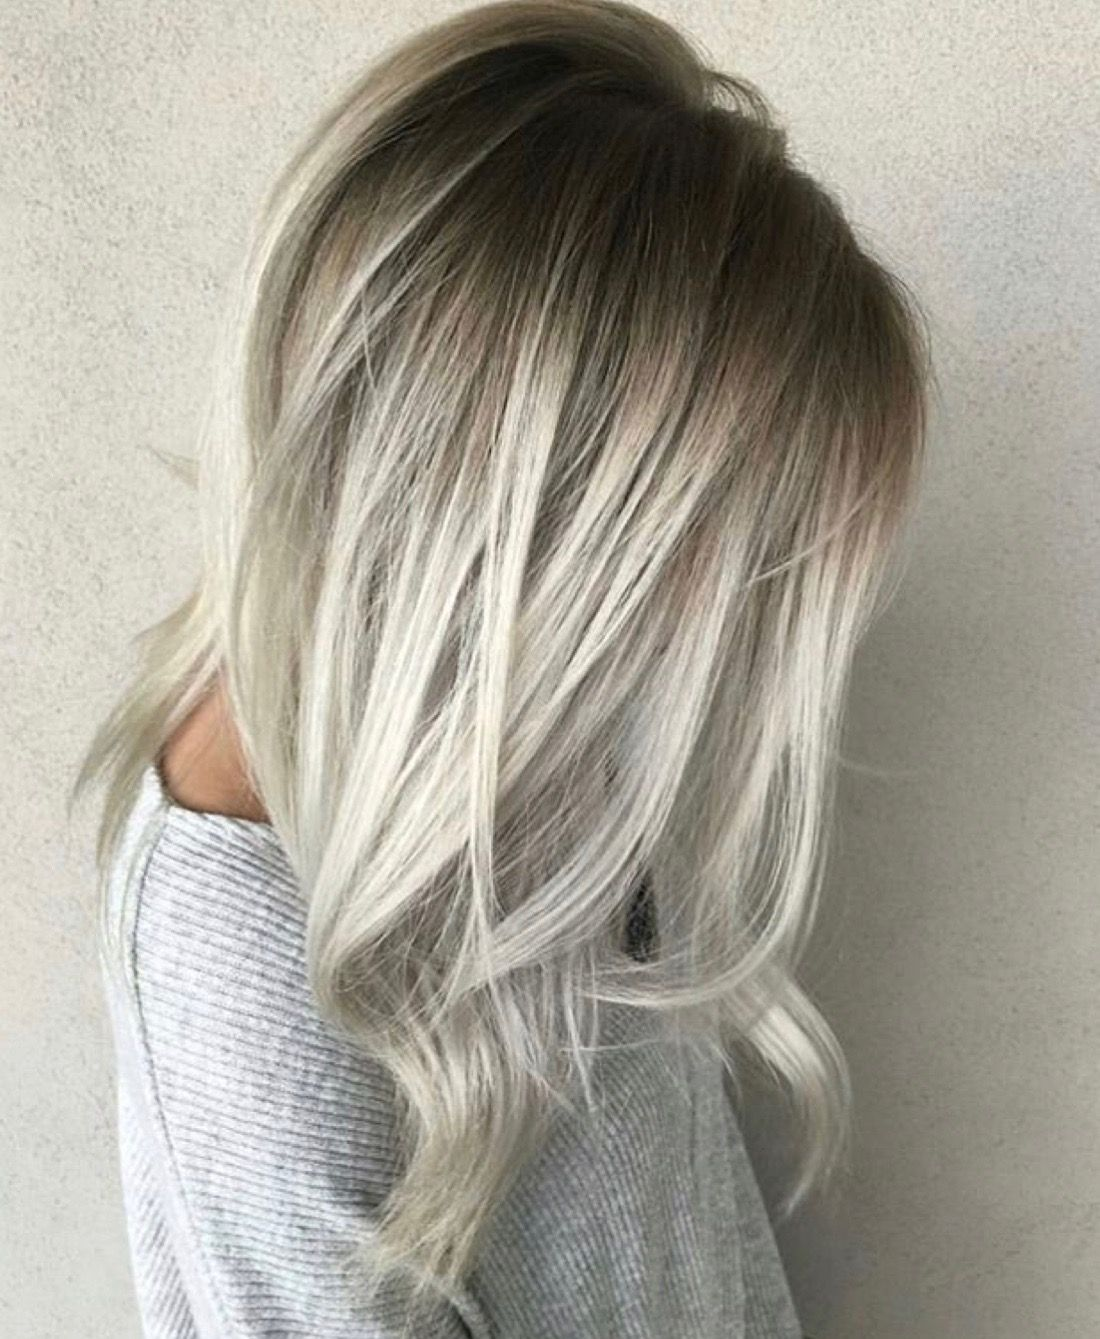 Neutral Rooted Blonde Balayage Fading Into Platinum Mids And Ends Stunning Color And Technique Love The Vol Platinum Blonde Hair Long Hair Styles Hair Styles